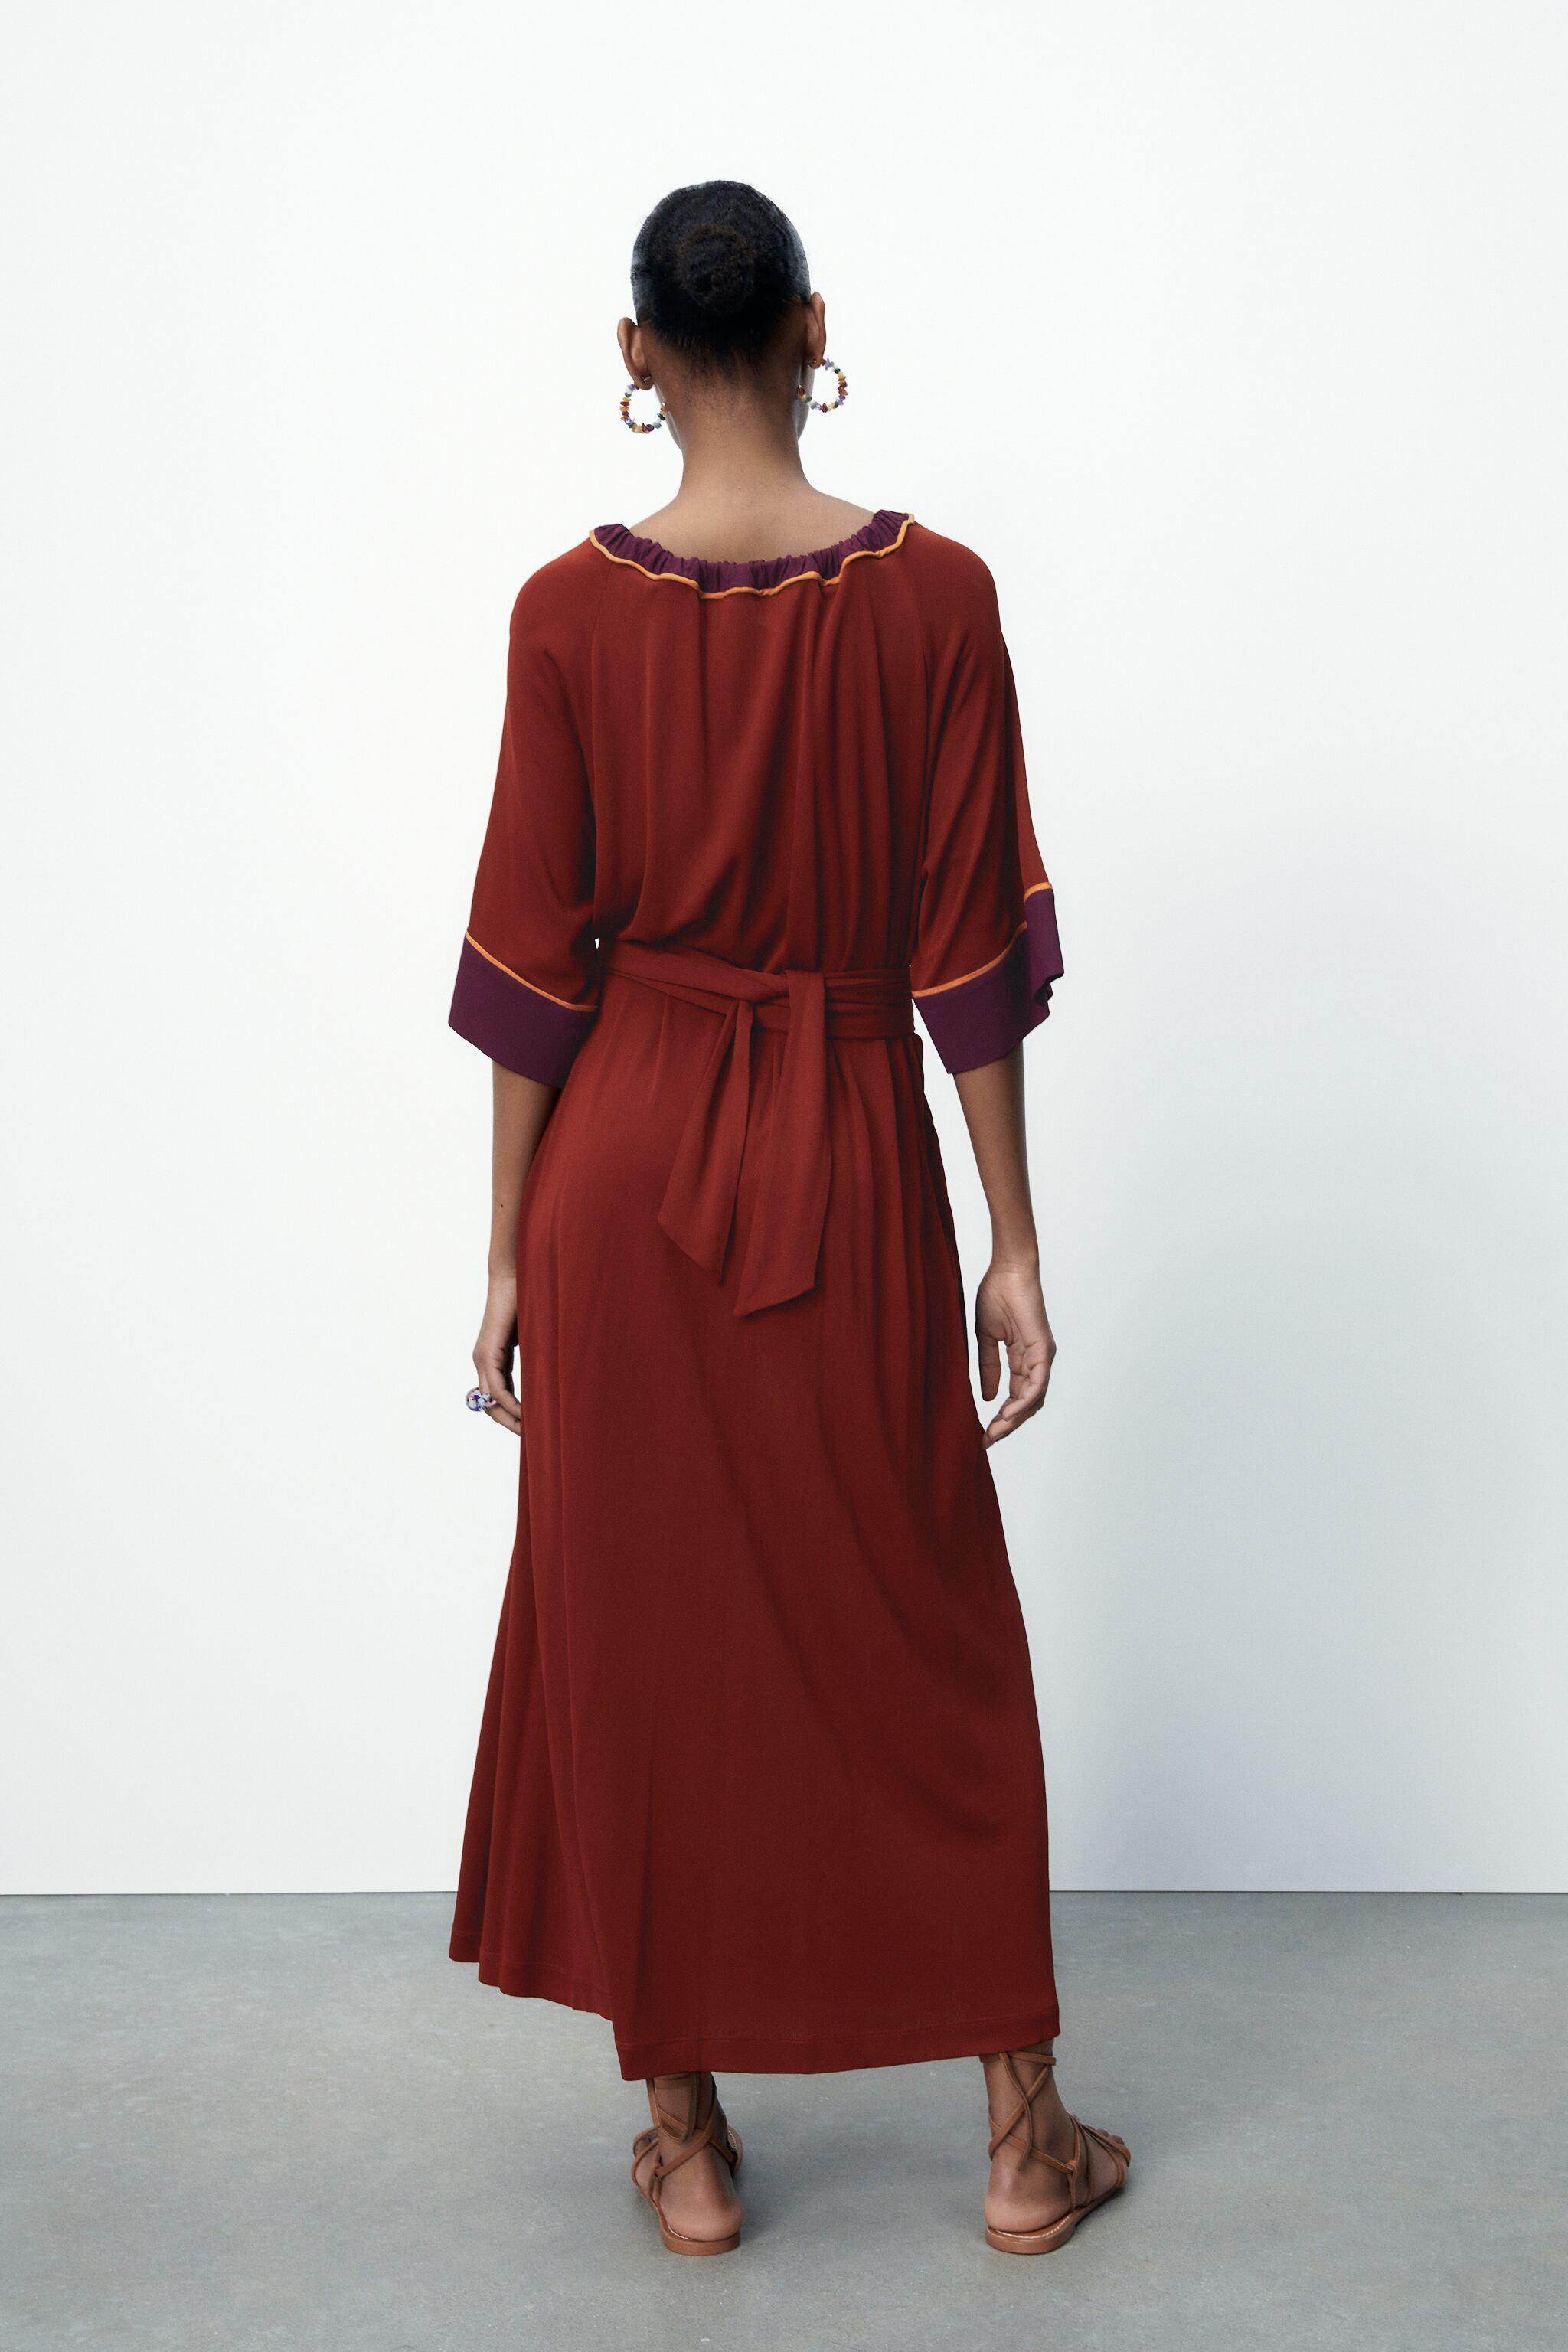 LIMITED EDITION CONTRASTING DRESS 5